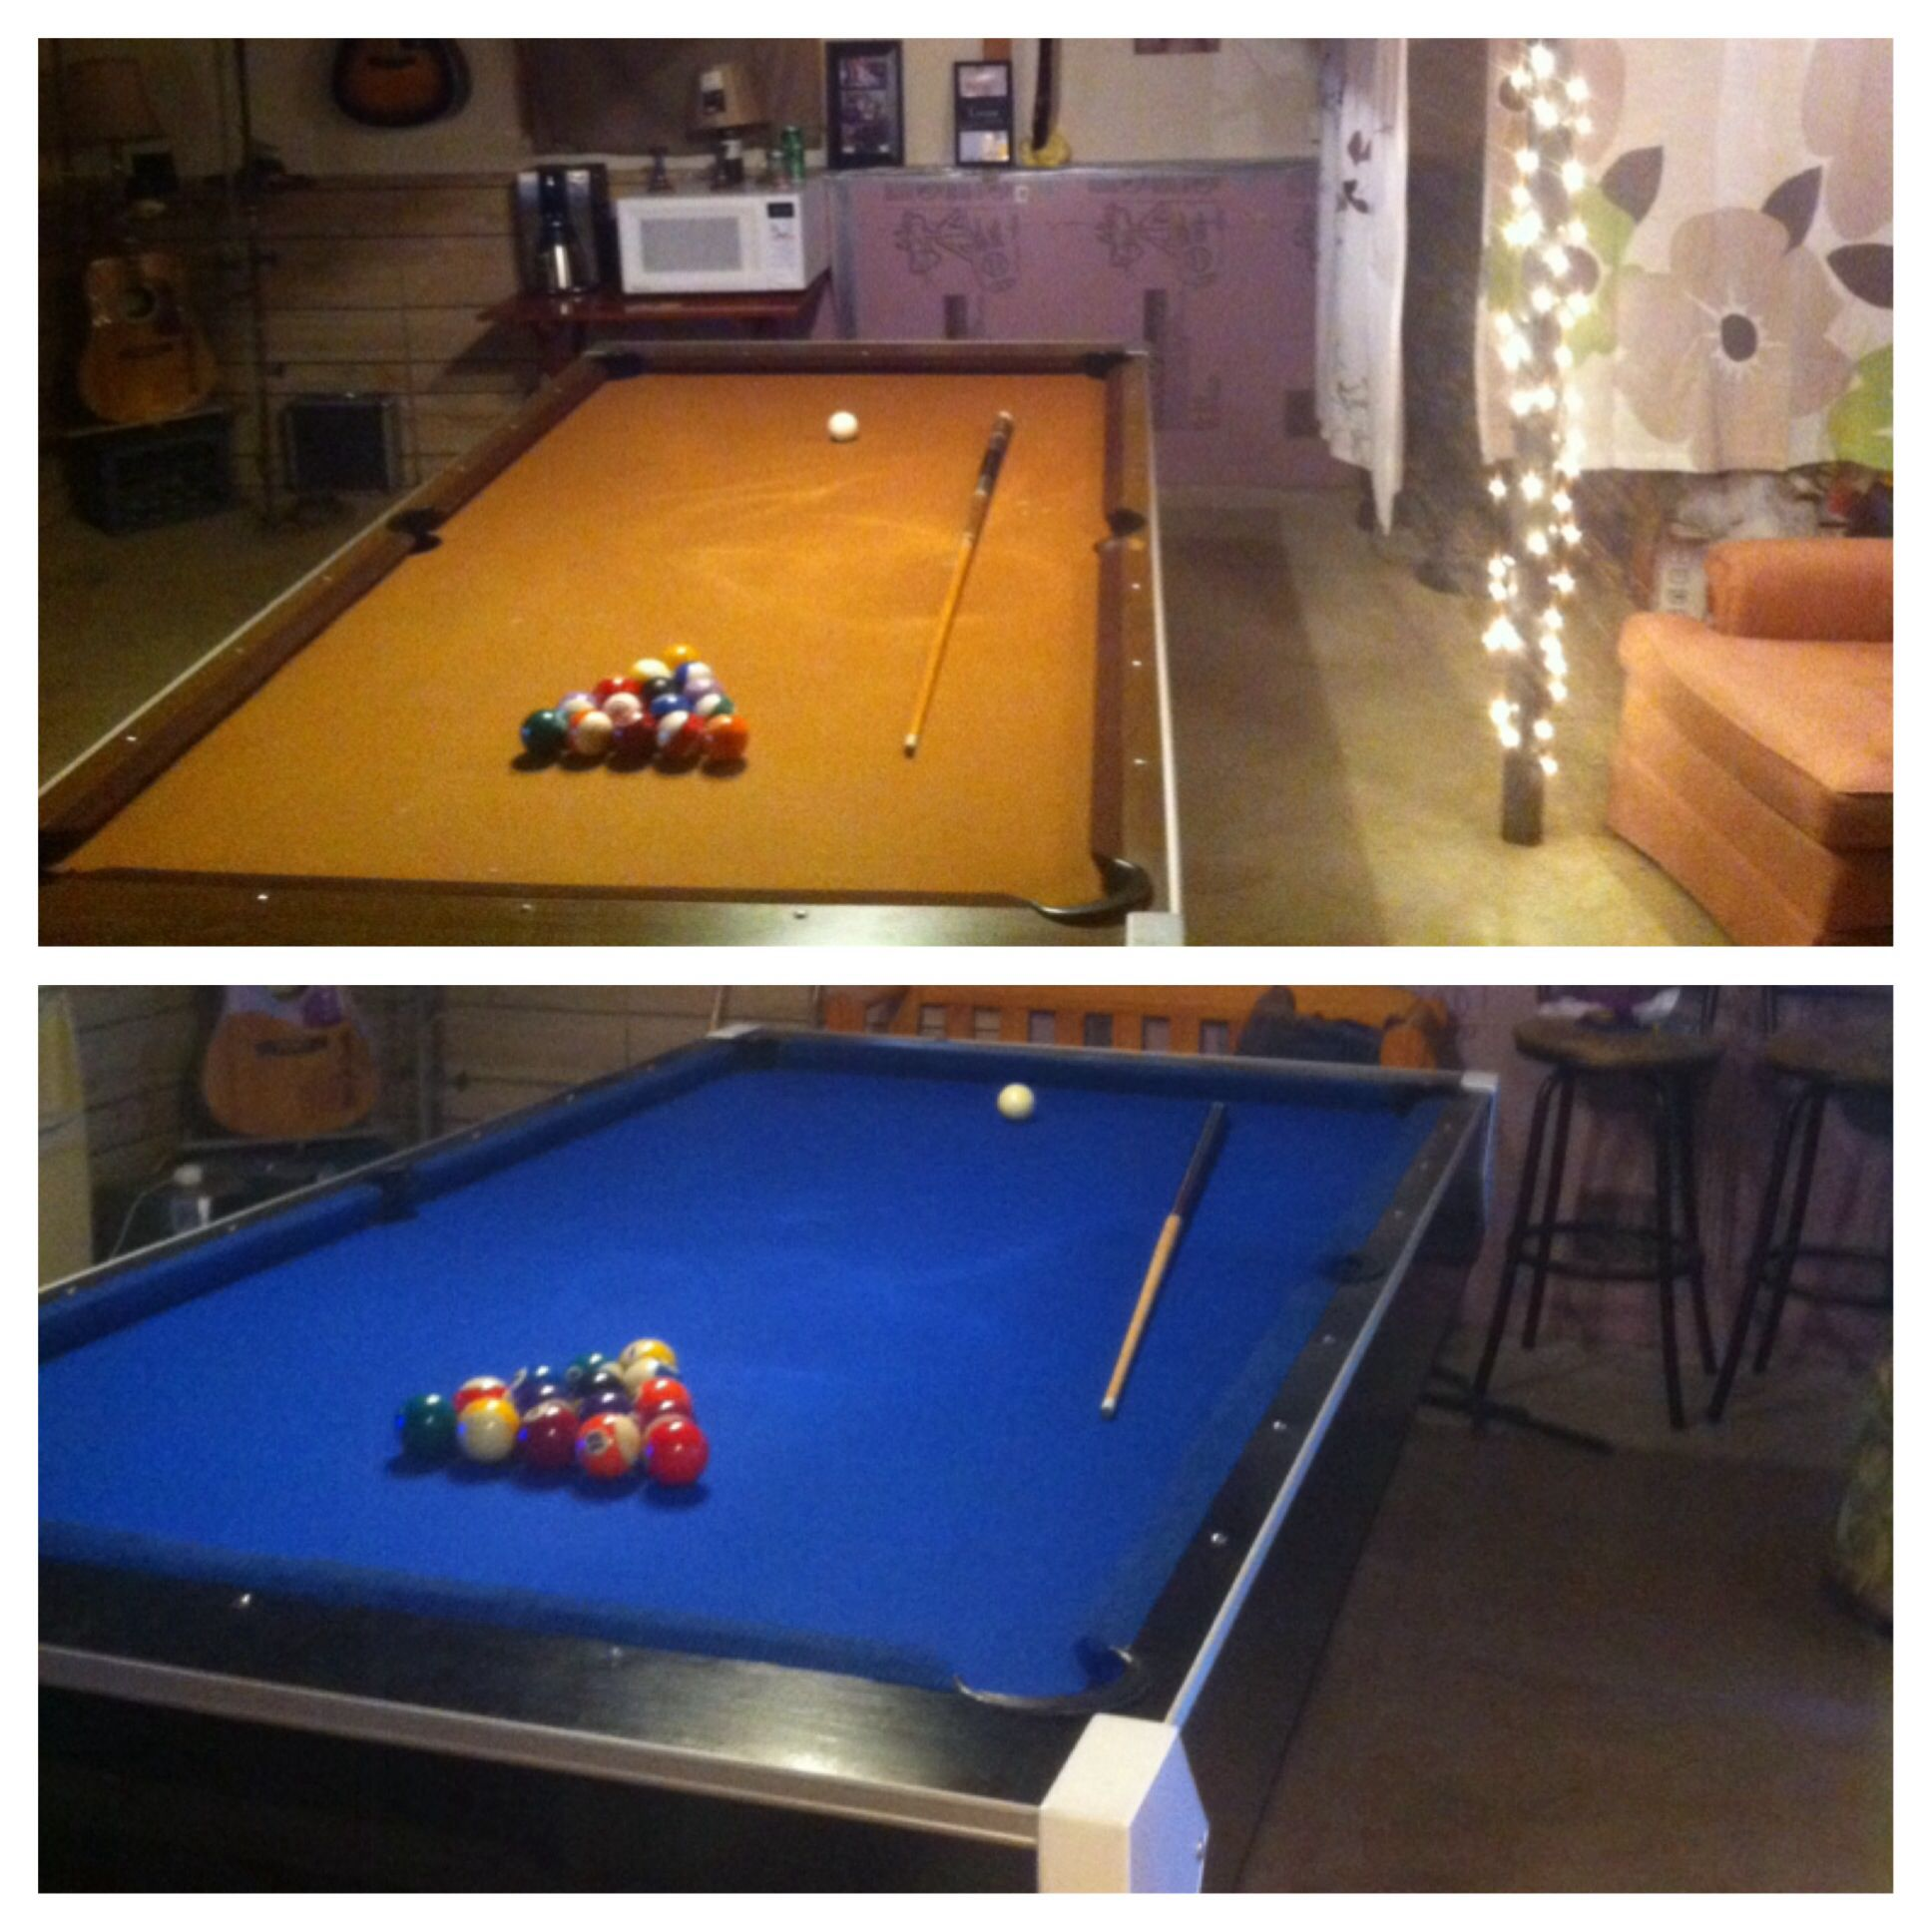 Diy pool table remodel used pool table 20 new felt for Pool redesign